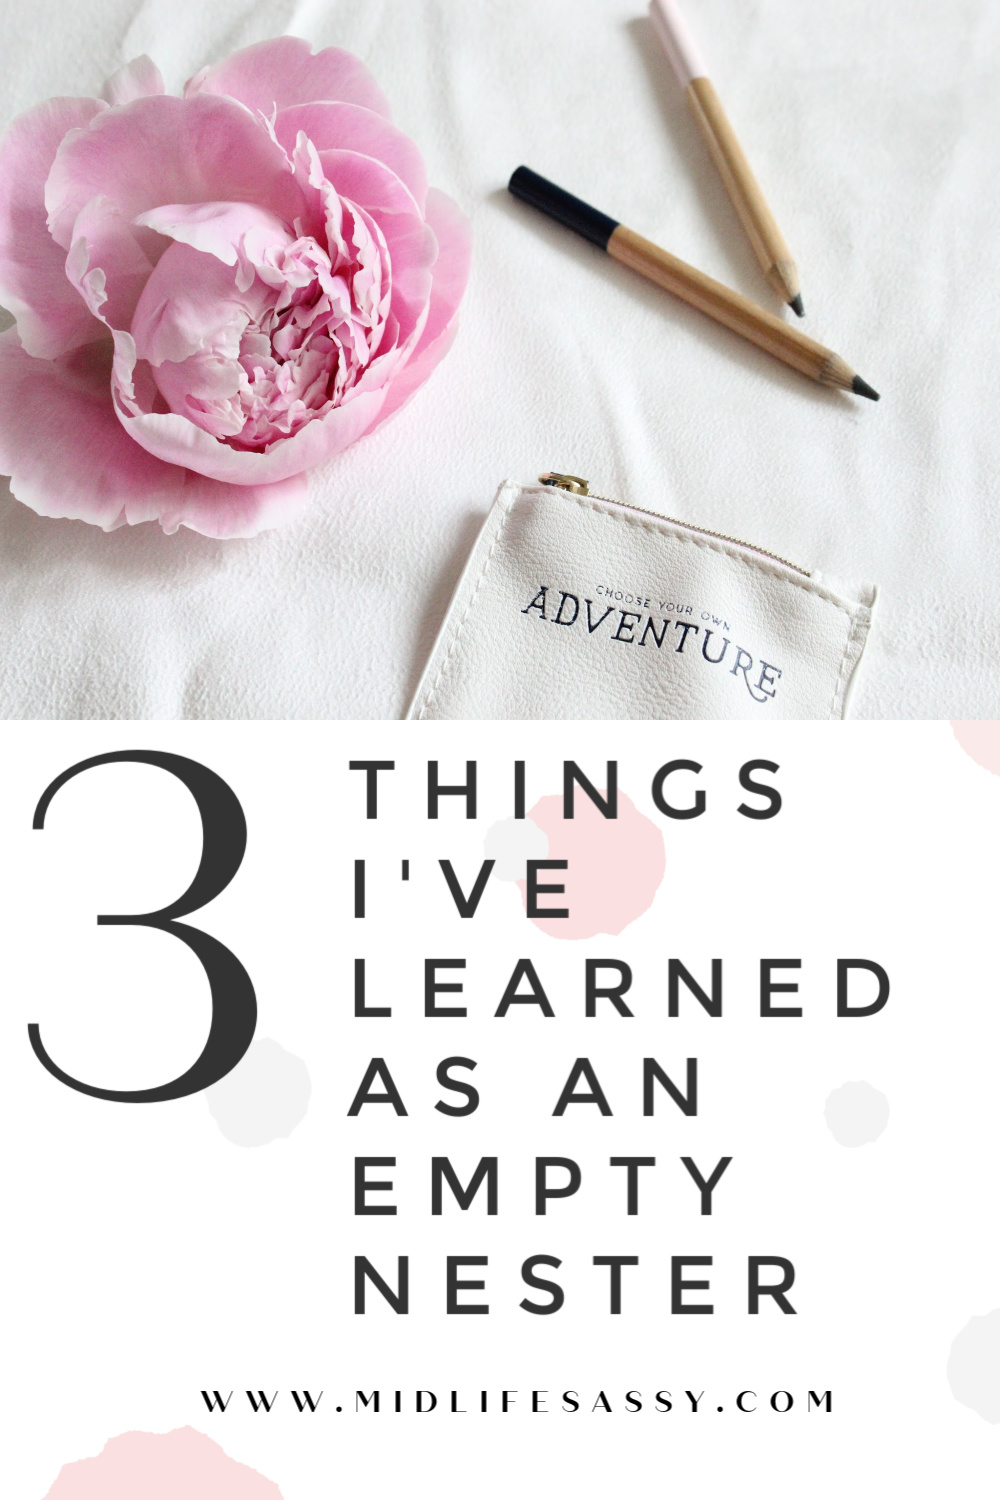 3 things Ive learned as an empty nester - 3 Things  I've Learned As An Empty Nester